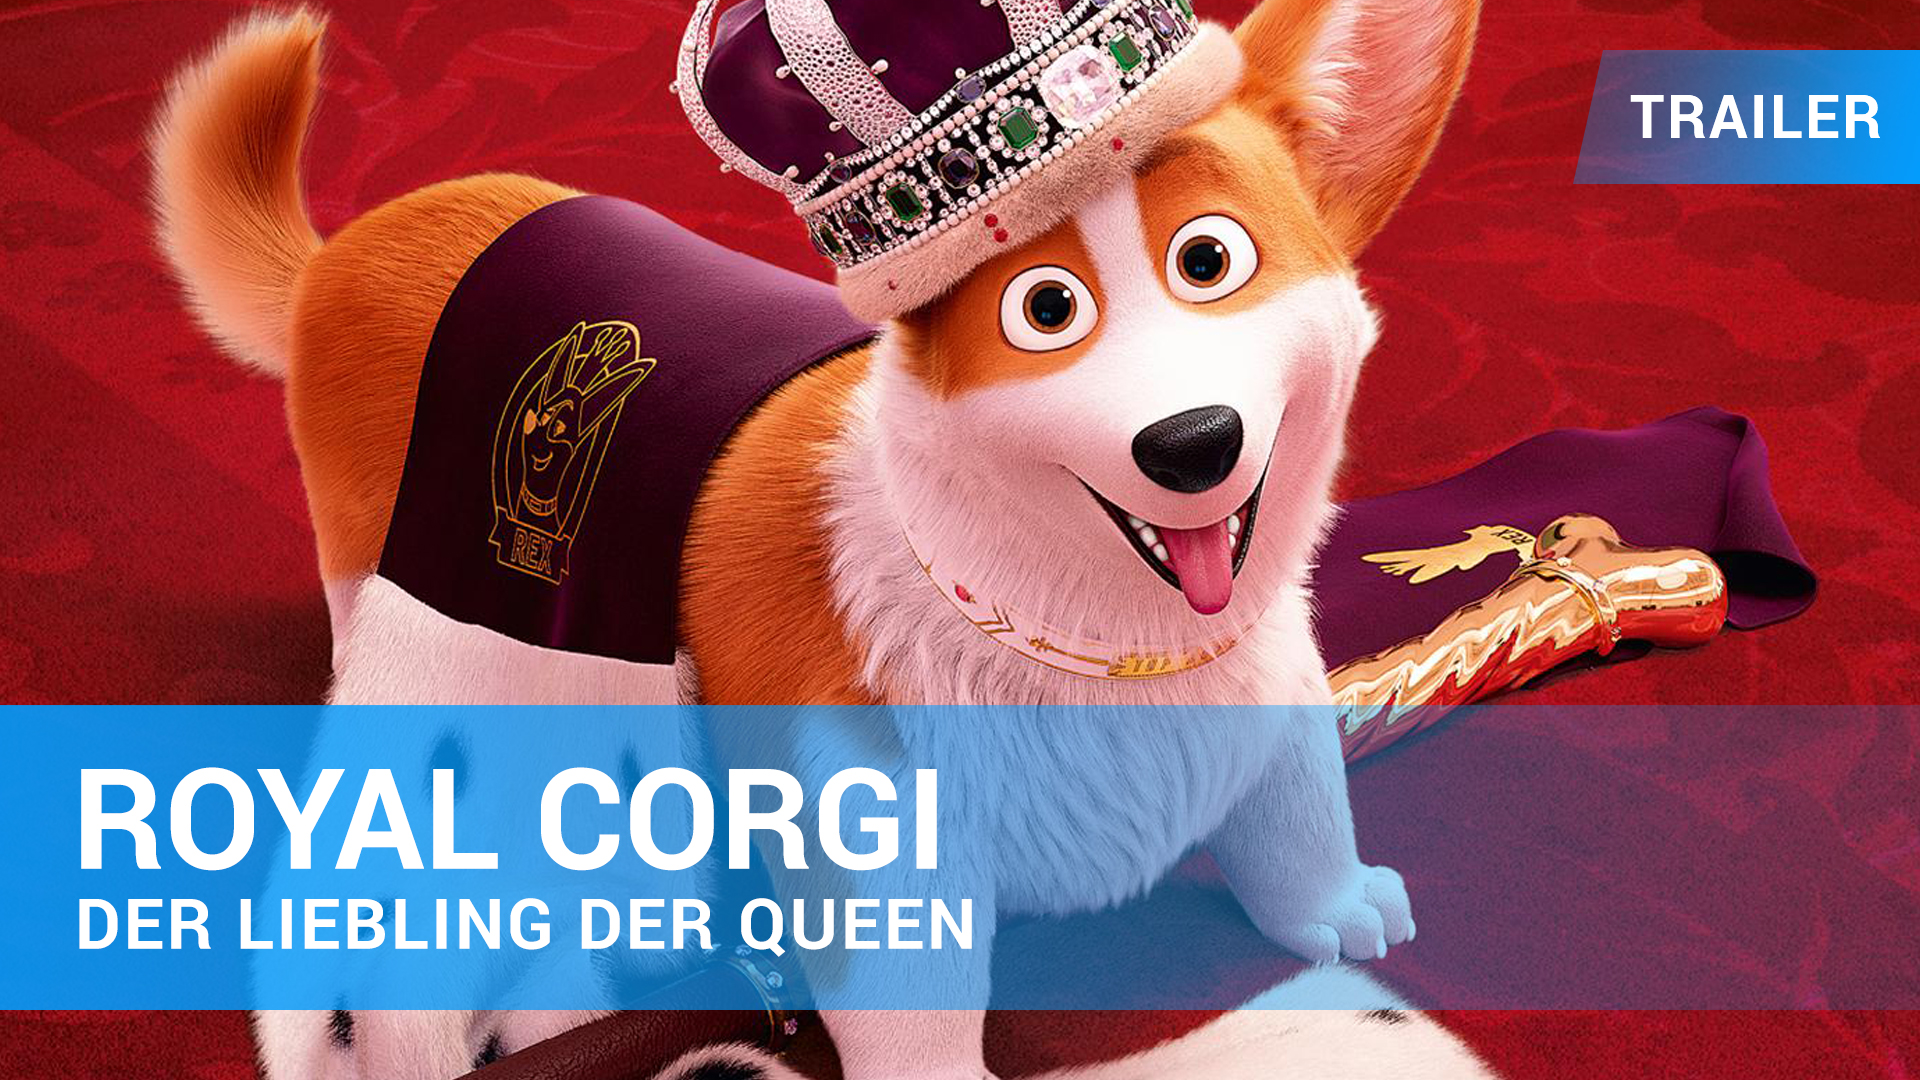 Royal Corgi - Der Liebling der Queen - Trailer Deutsch